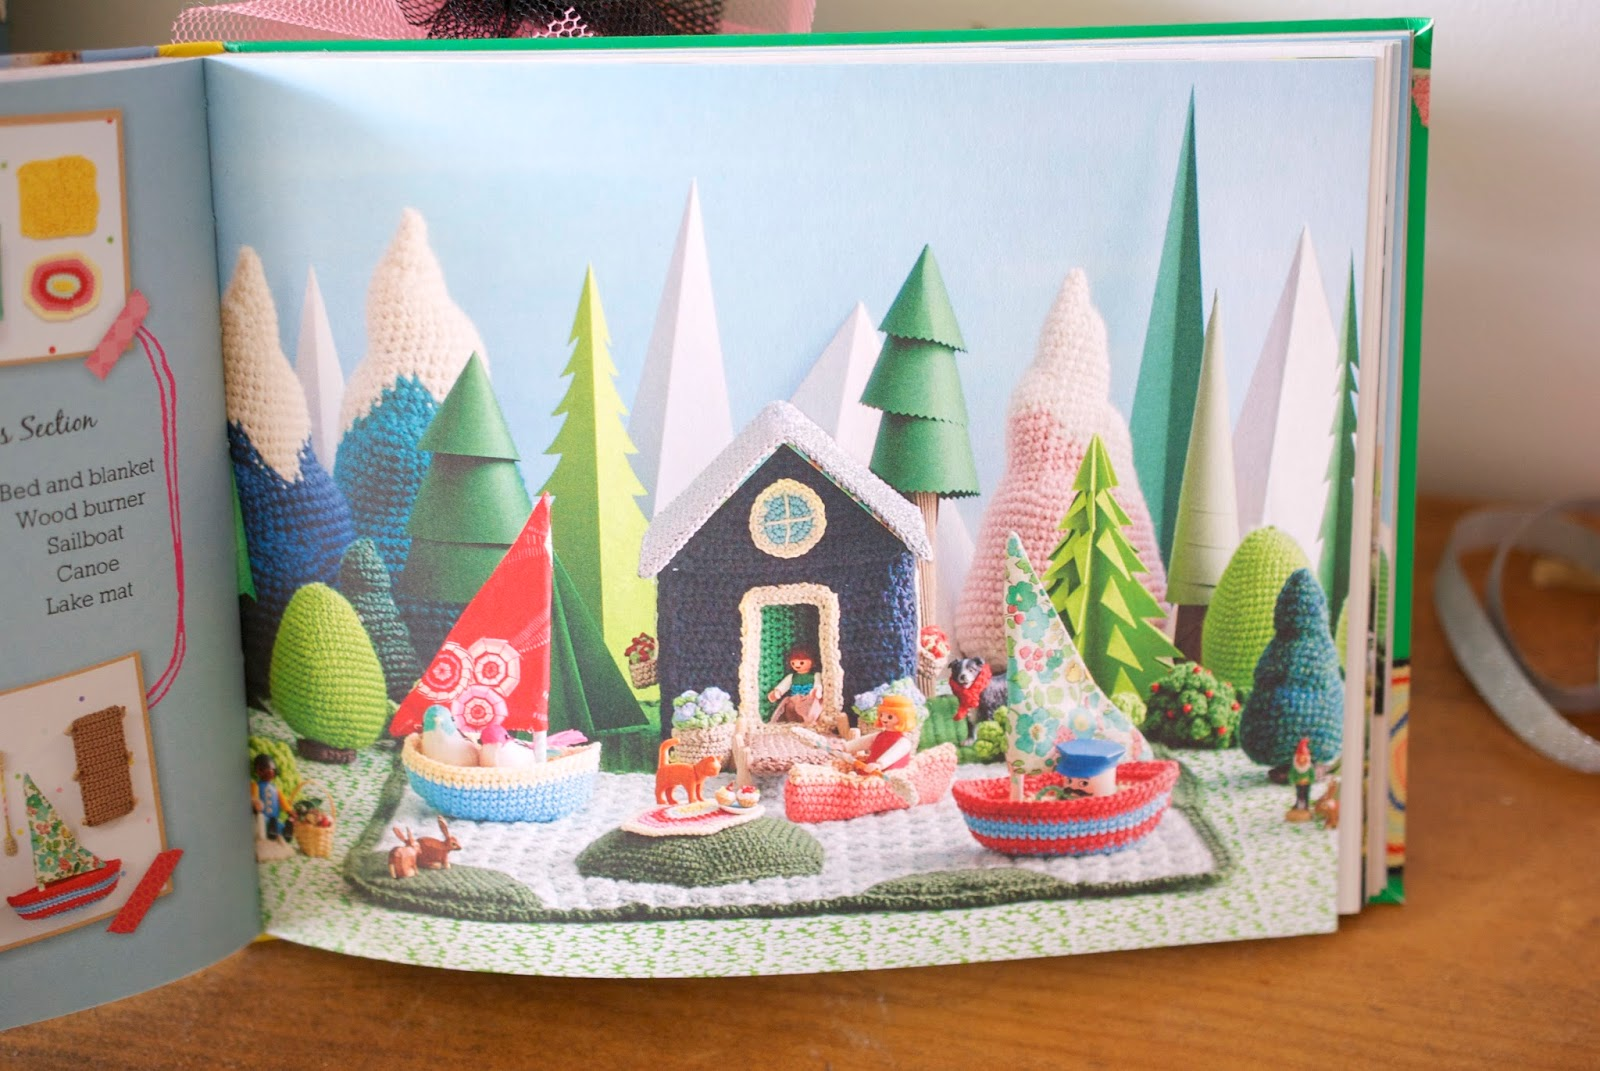 'Let's Go Camping! Crochet Your Own Adventure' - a look inside the book!